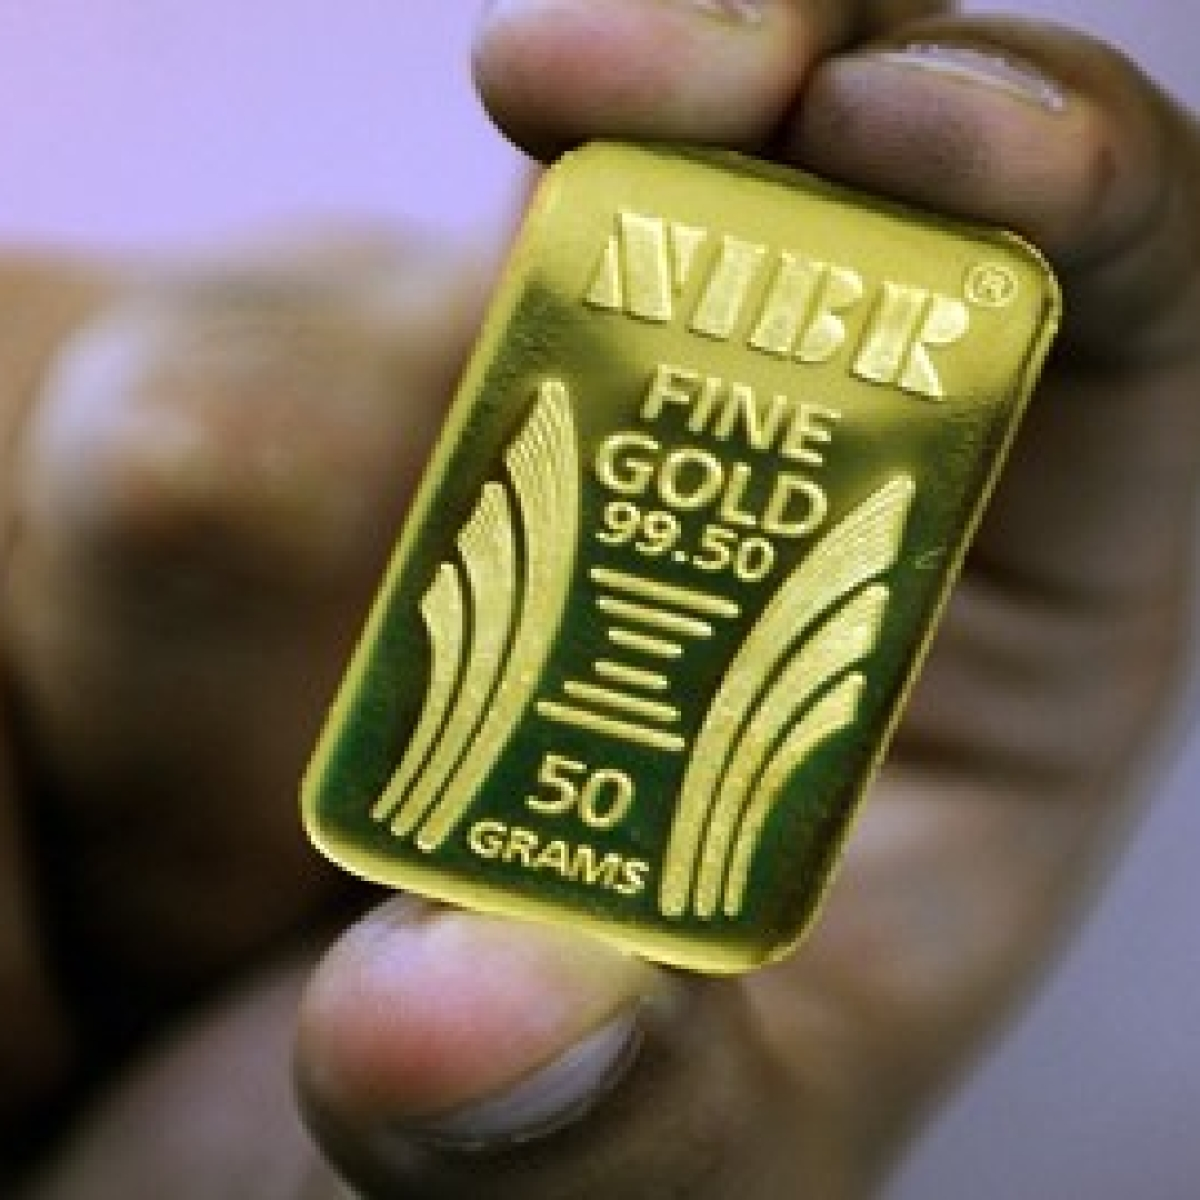 Fear is the key: Gold rate jumps amid coronavirus scare